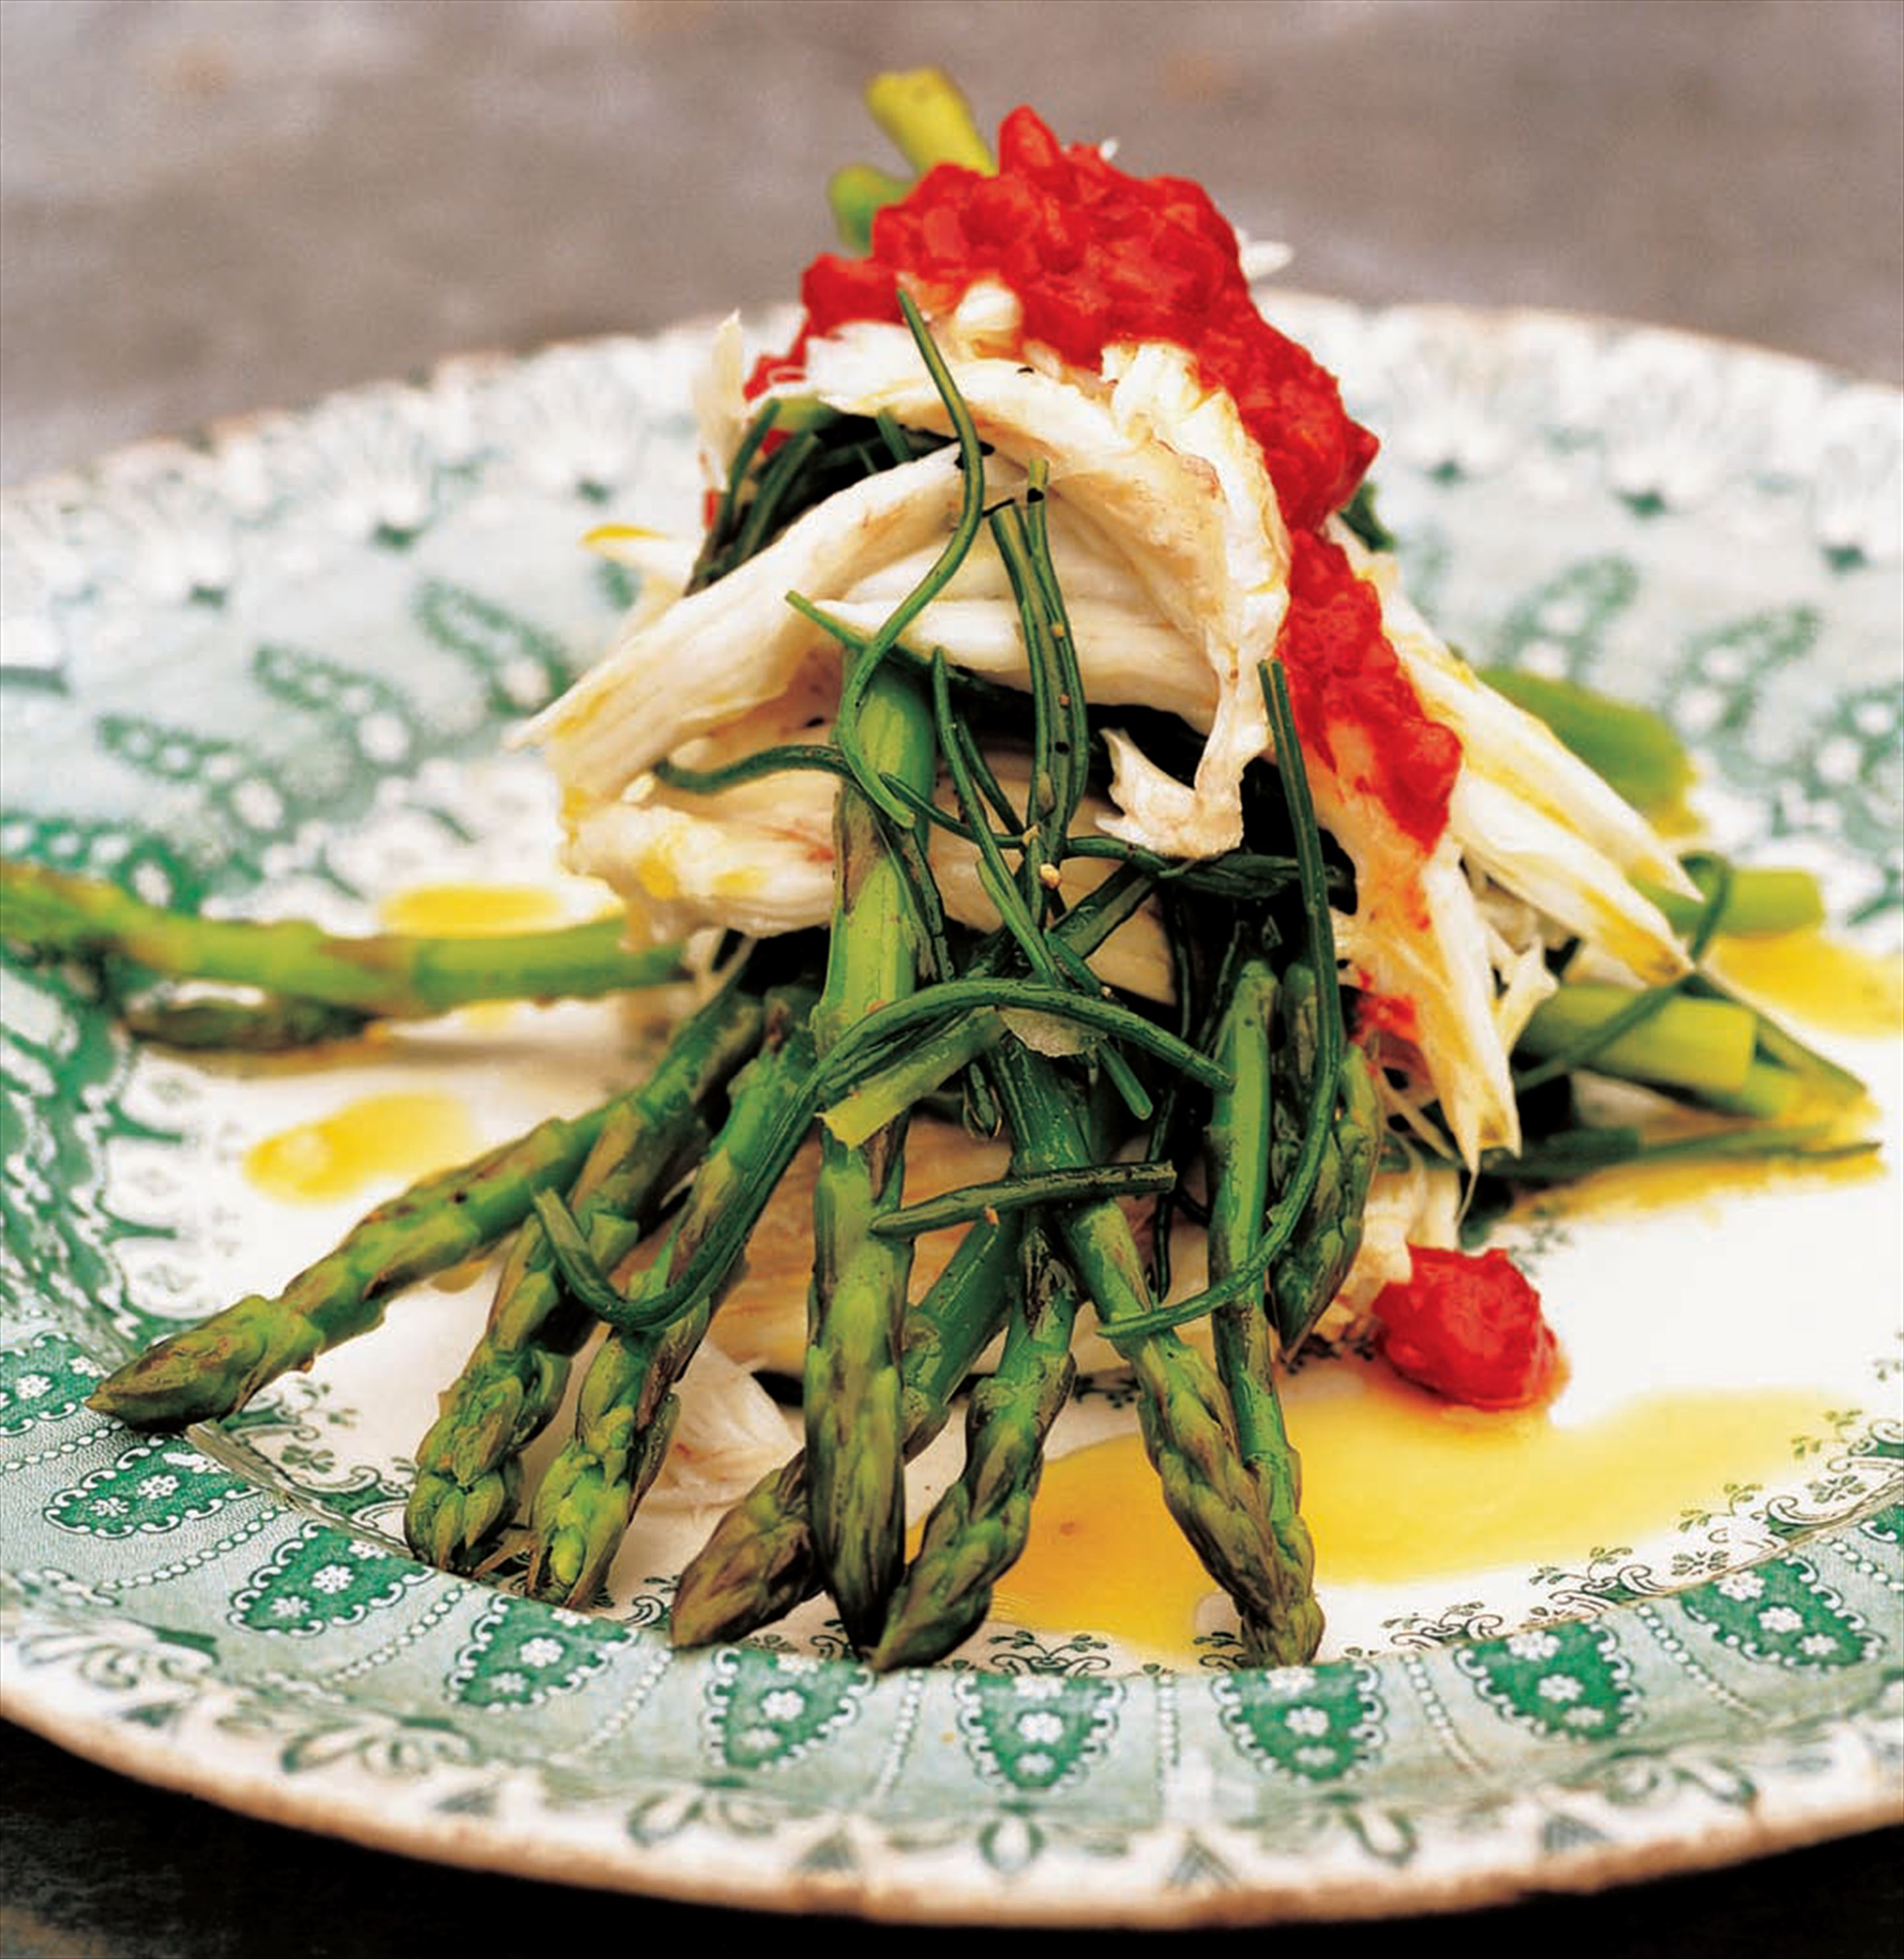 Asparagus with agretti, chilli oil and poached skate